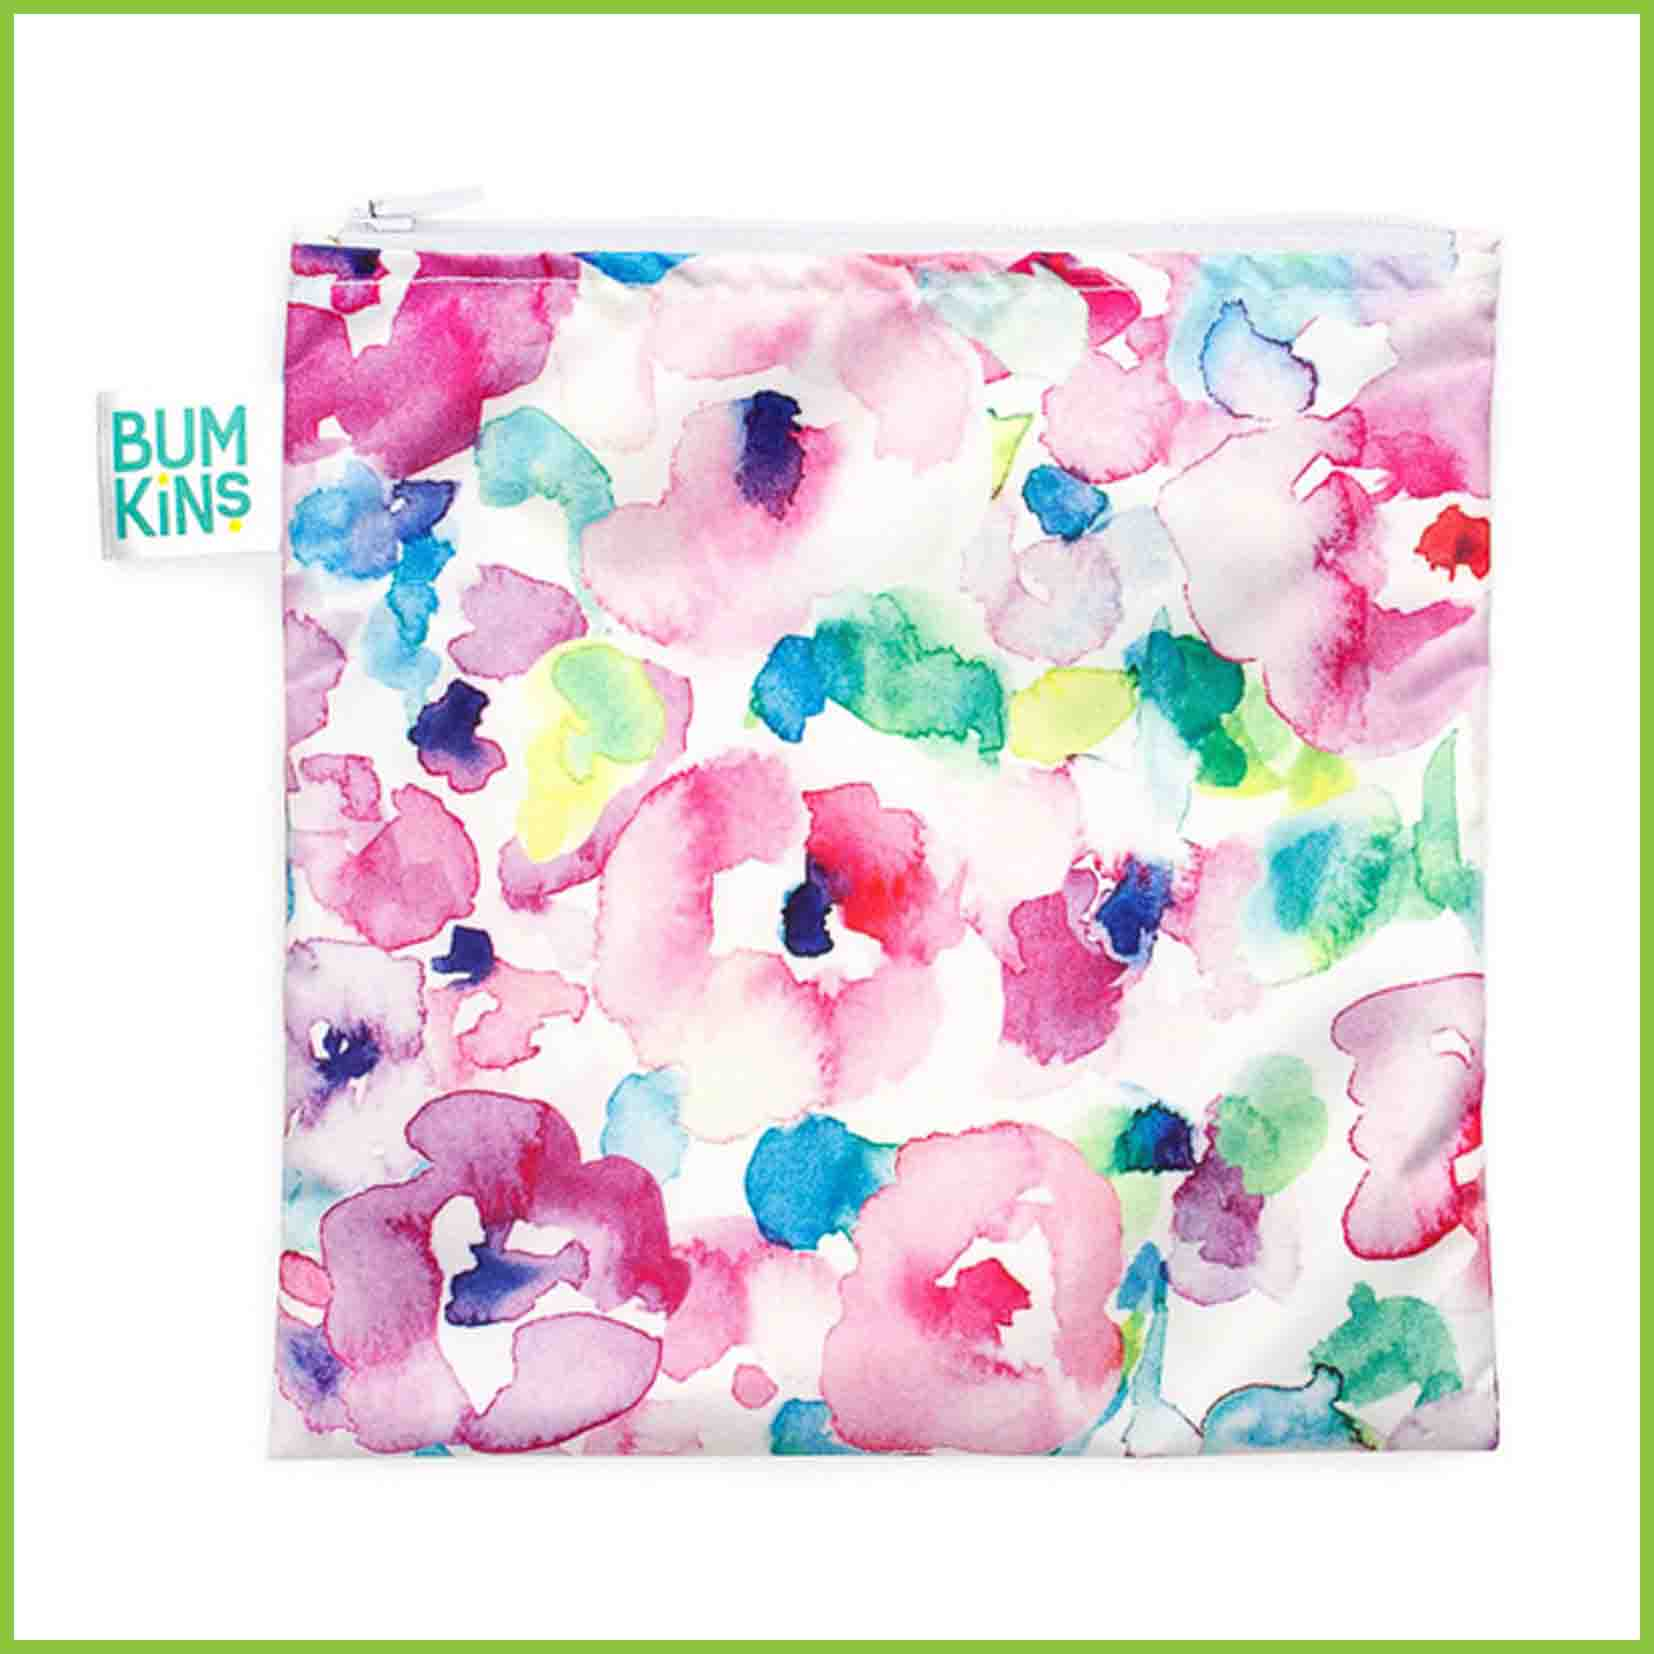 A Bumkins sandwich bag with a pink watercolours design.